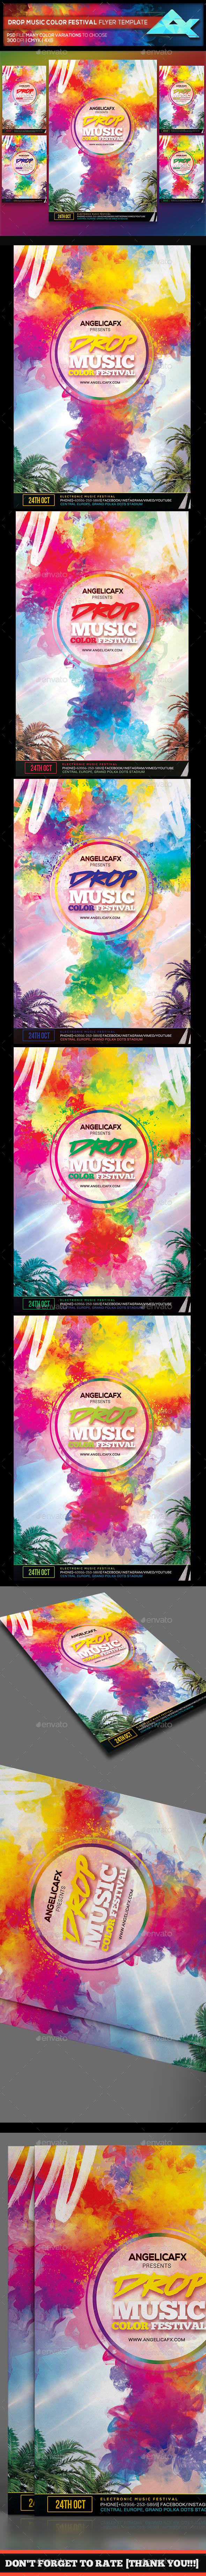 Drop Music Color Festival Flyer Template - Events Flyers